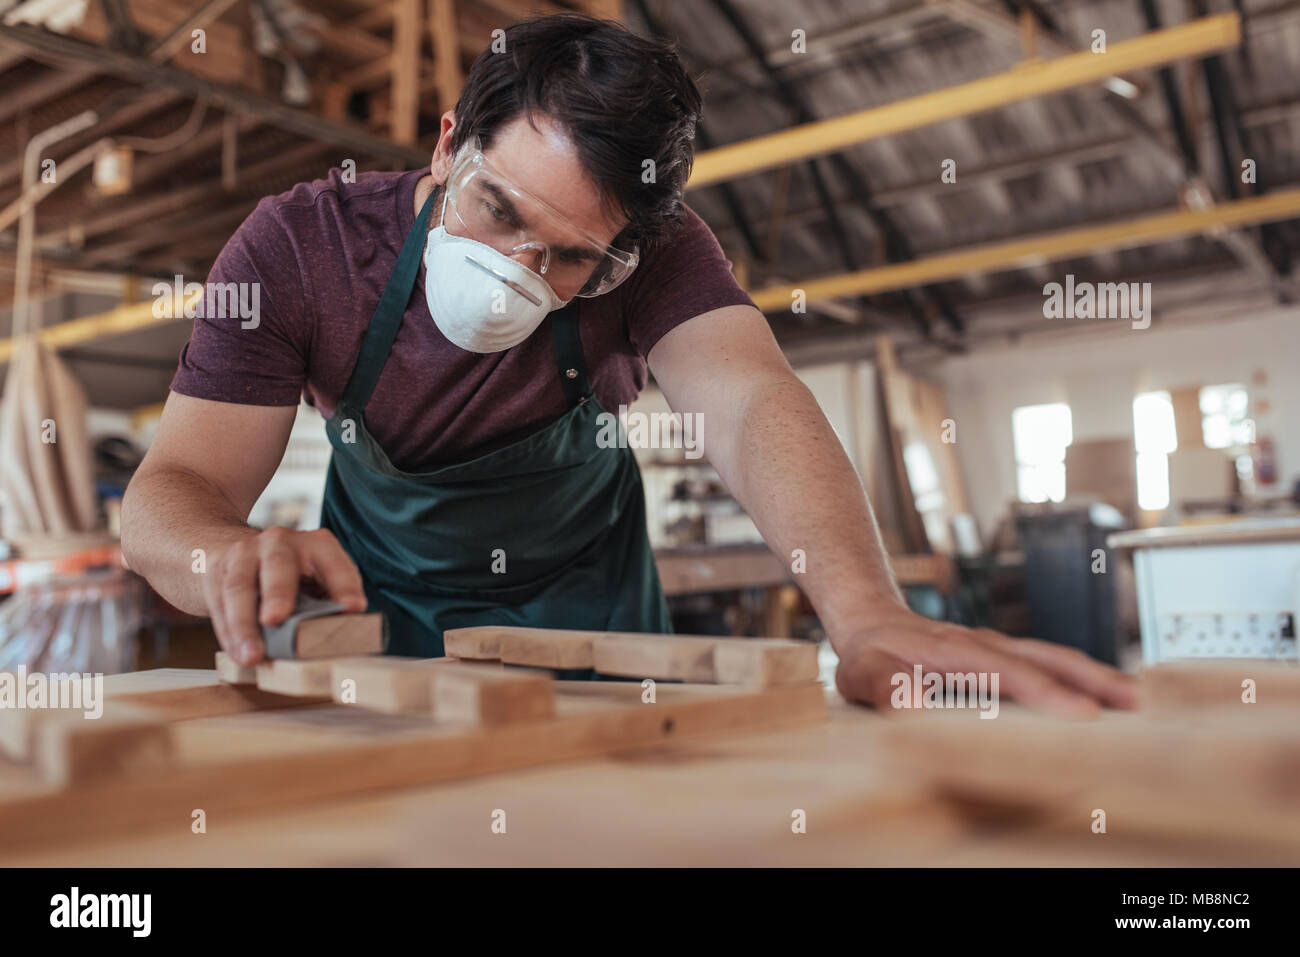 Young craftsman skillfully sanding wood in his large workshop - Stock Image